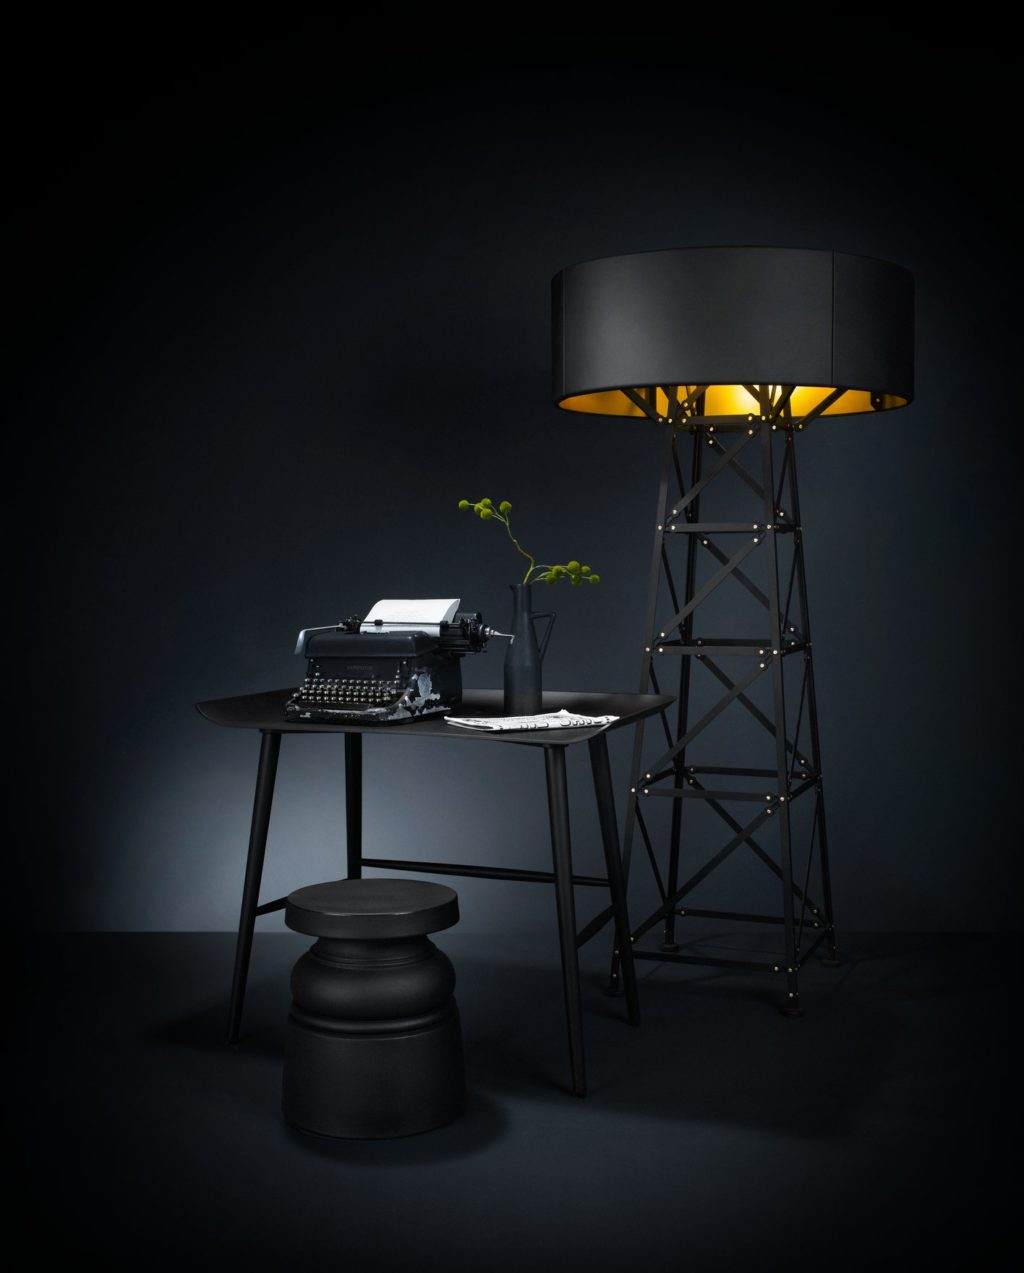 https://desidea.hu/wp-content/uploads/fly-images/160229/moooi-construction-allolampa-1024x0.jpg